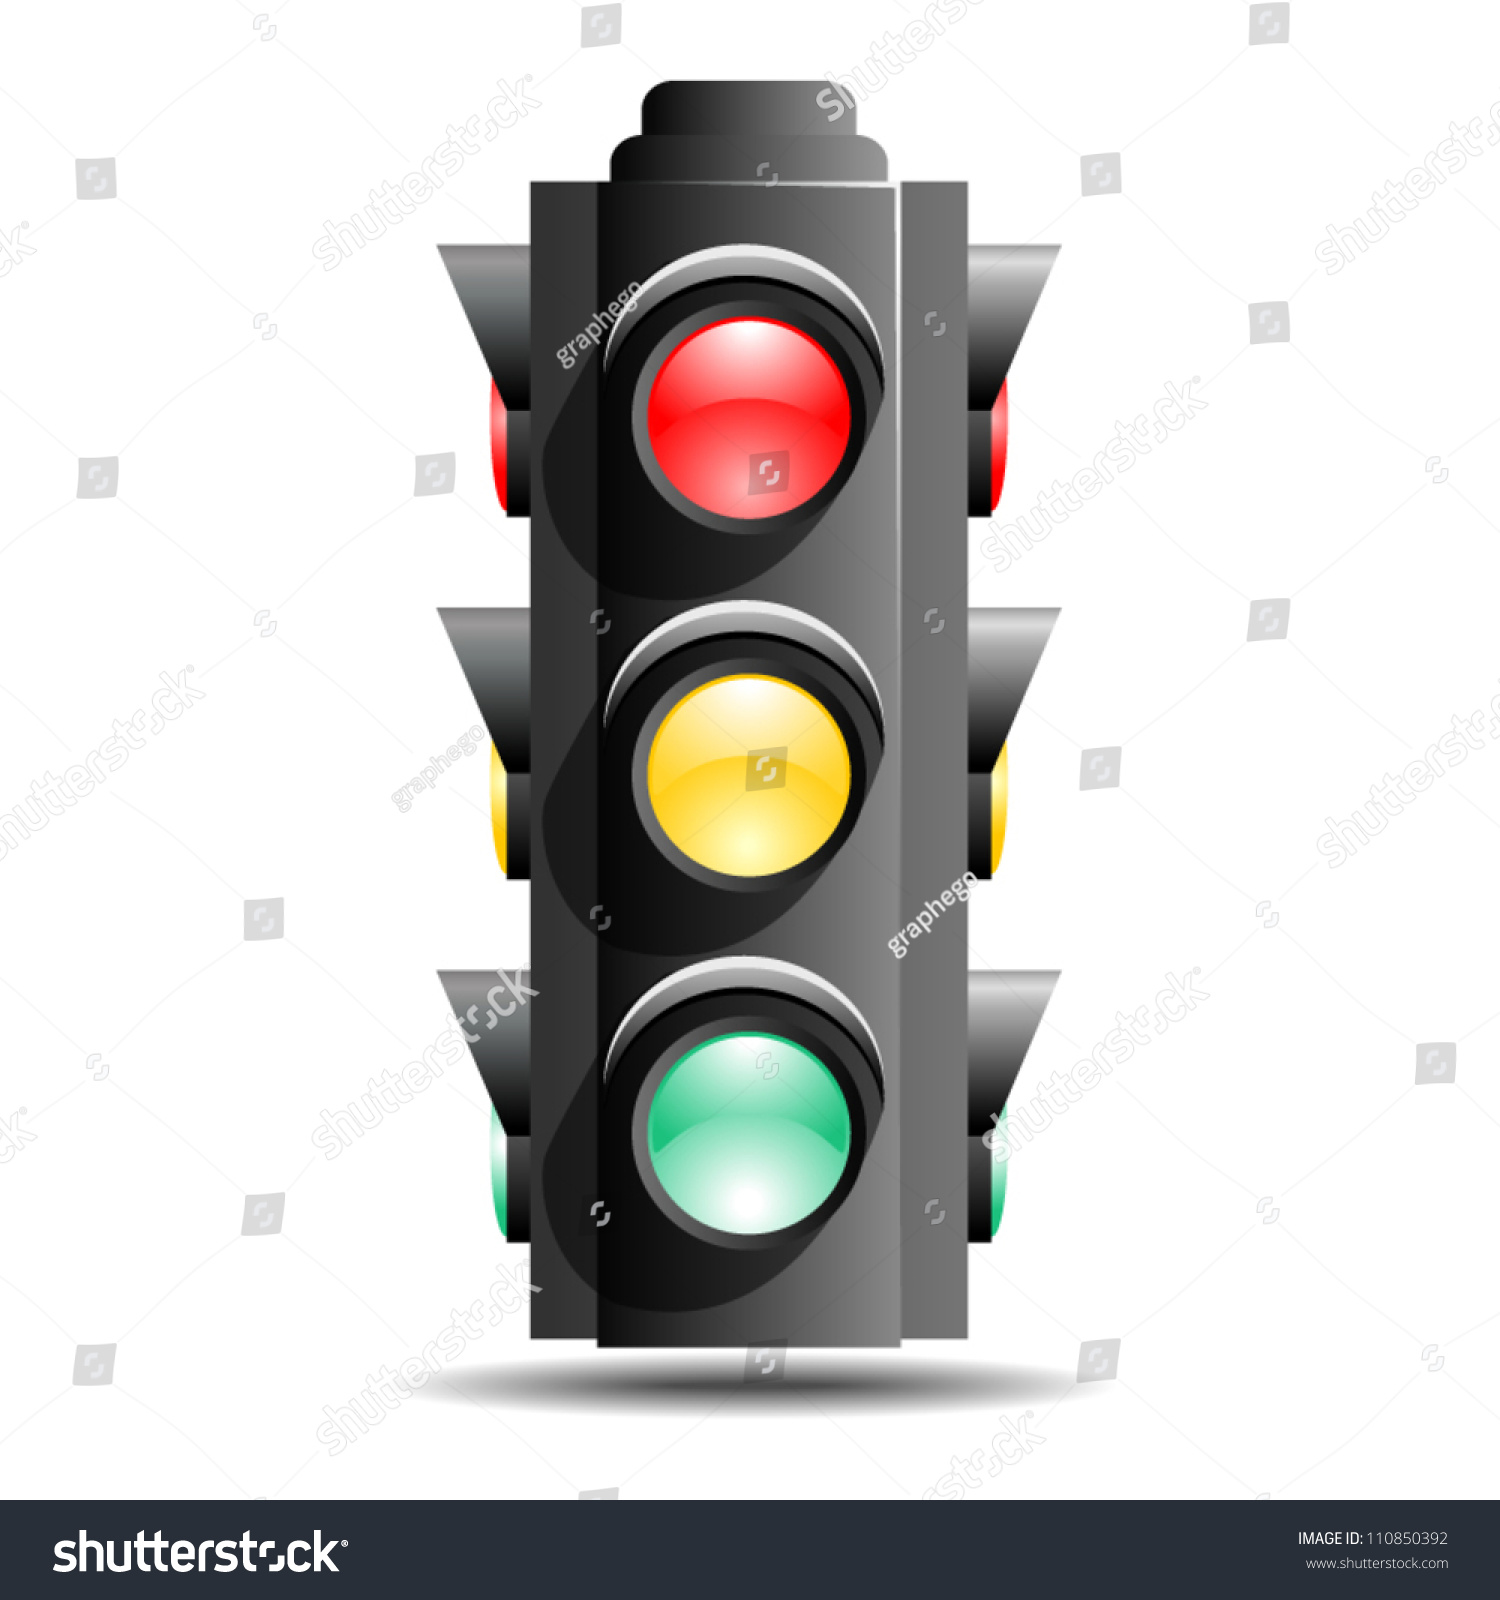 how to change red lights to green